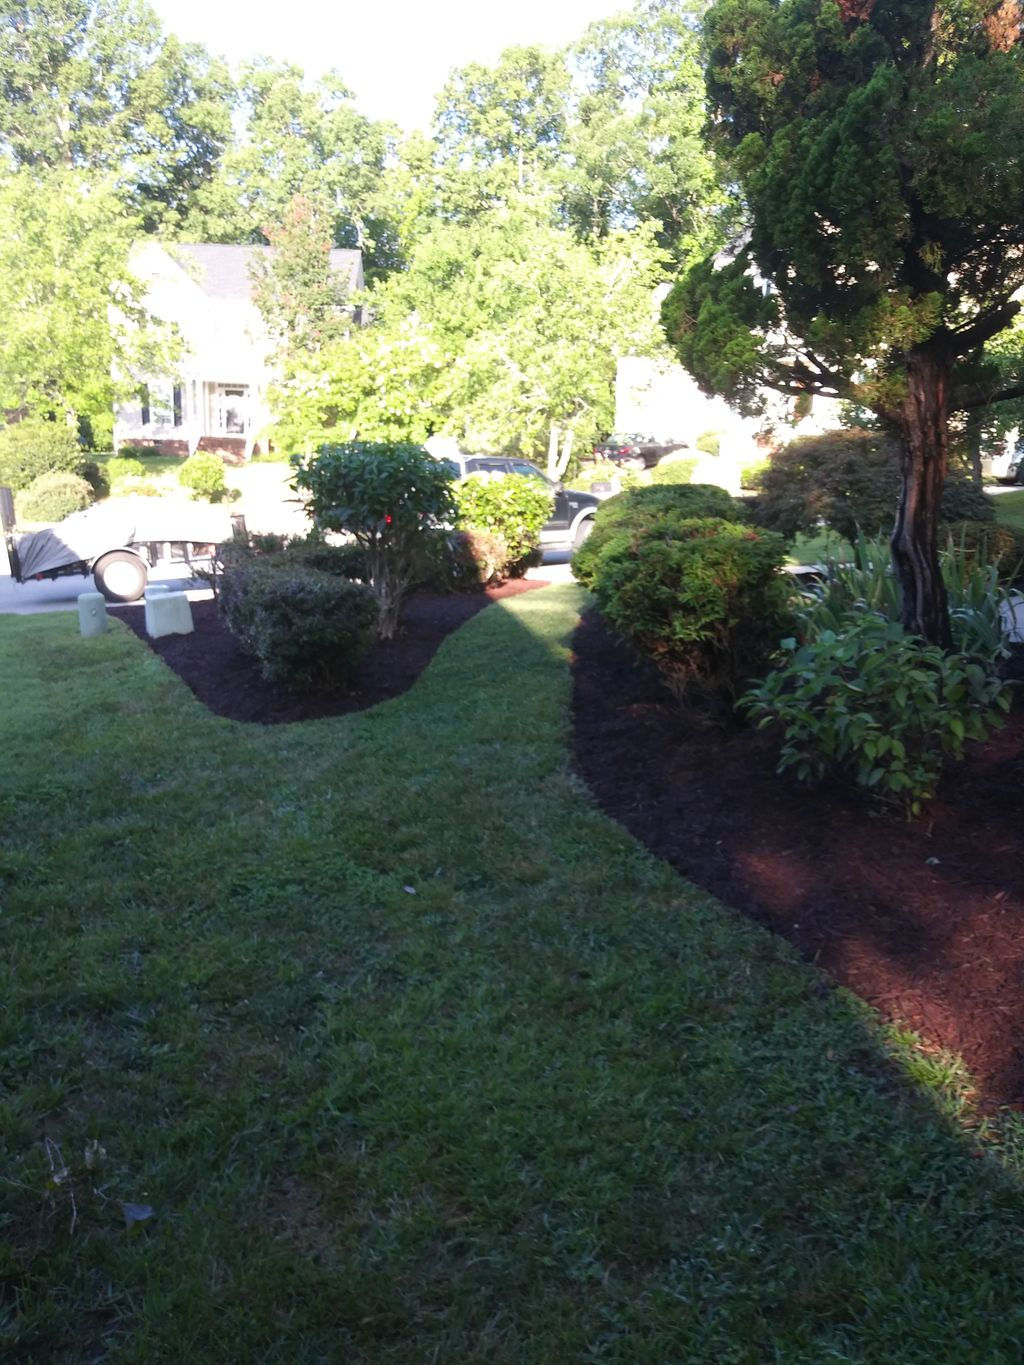 Clean up's w pruning and mulch